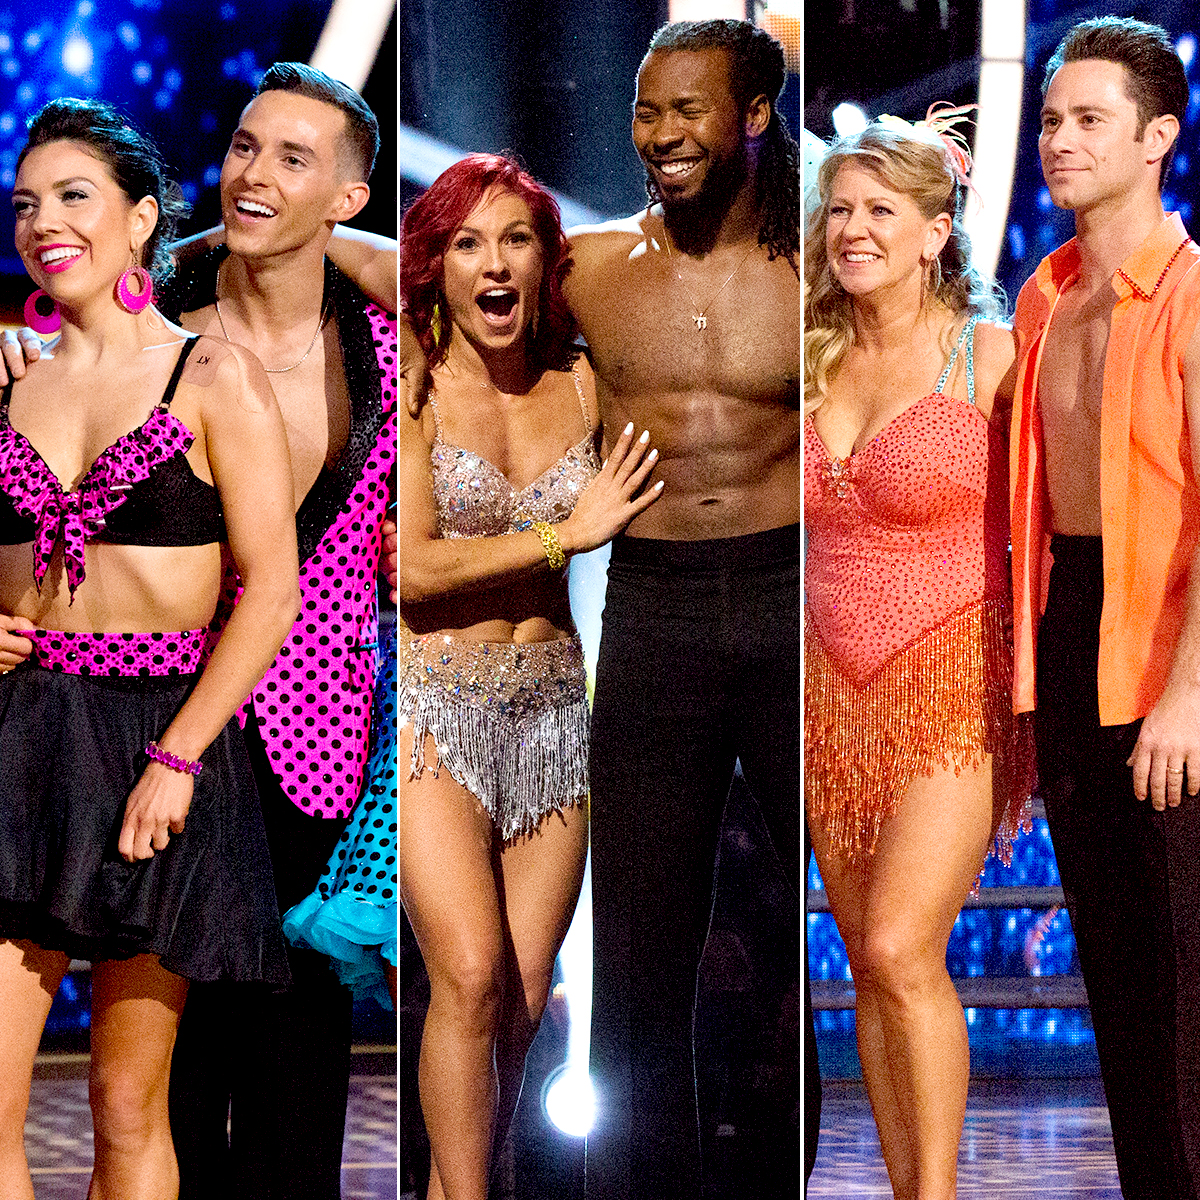 Dancing with the stars couple hookup australia